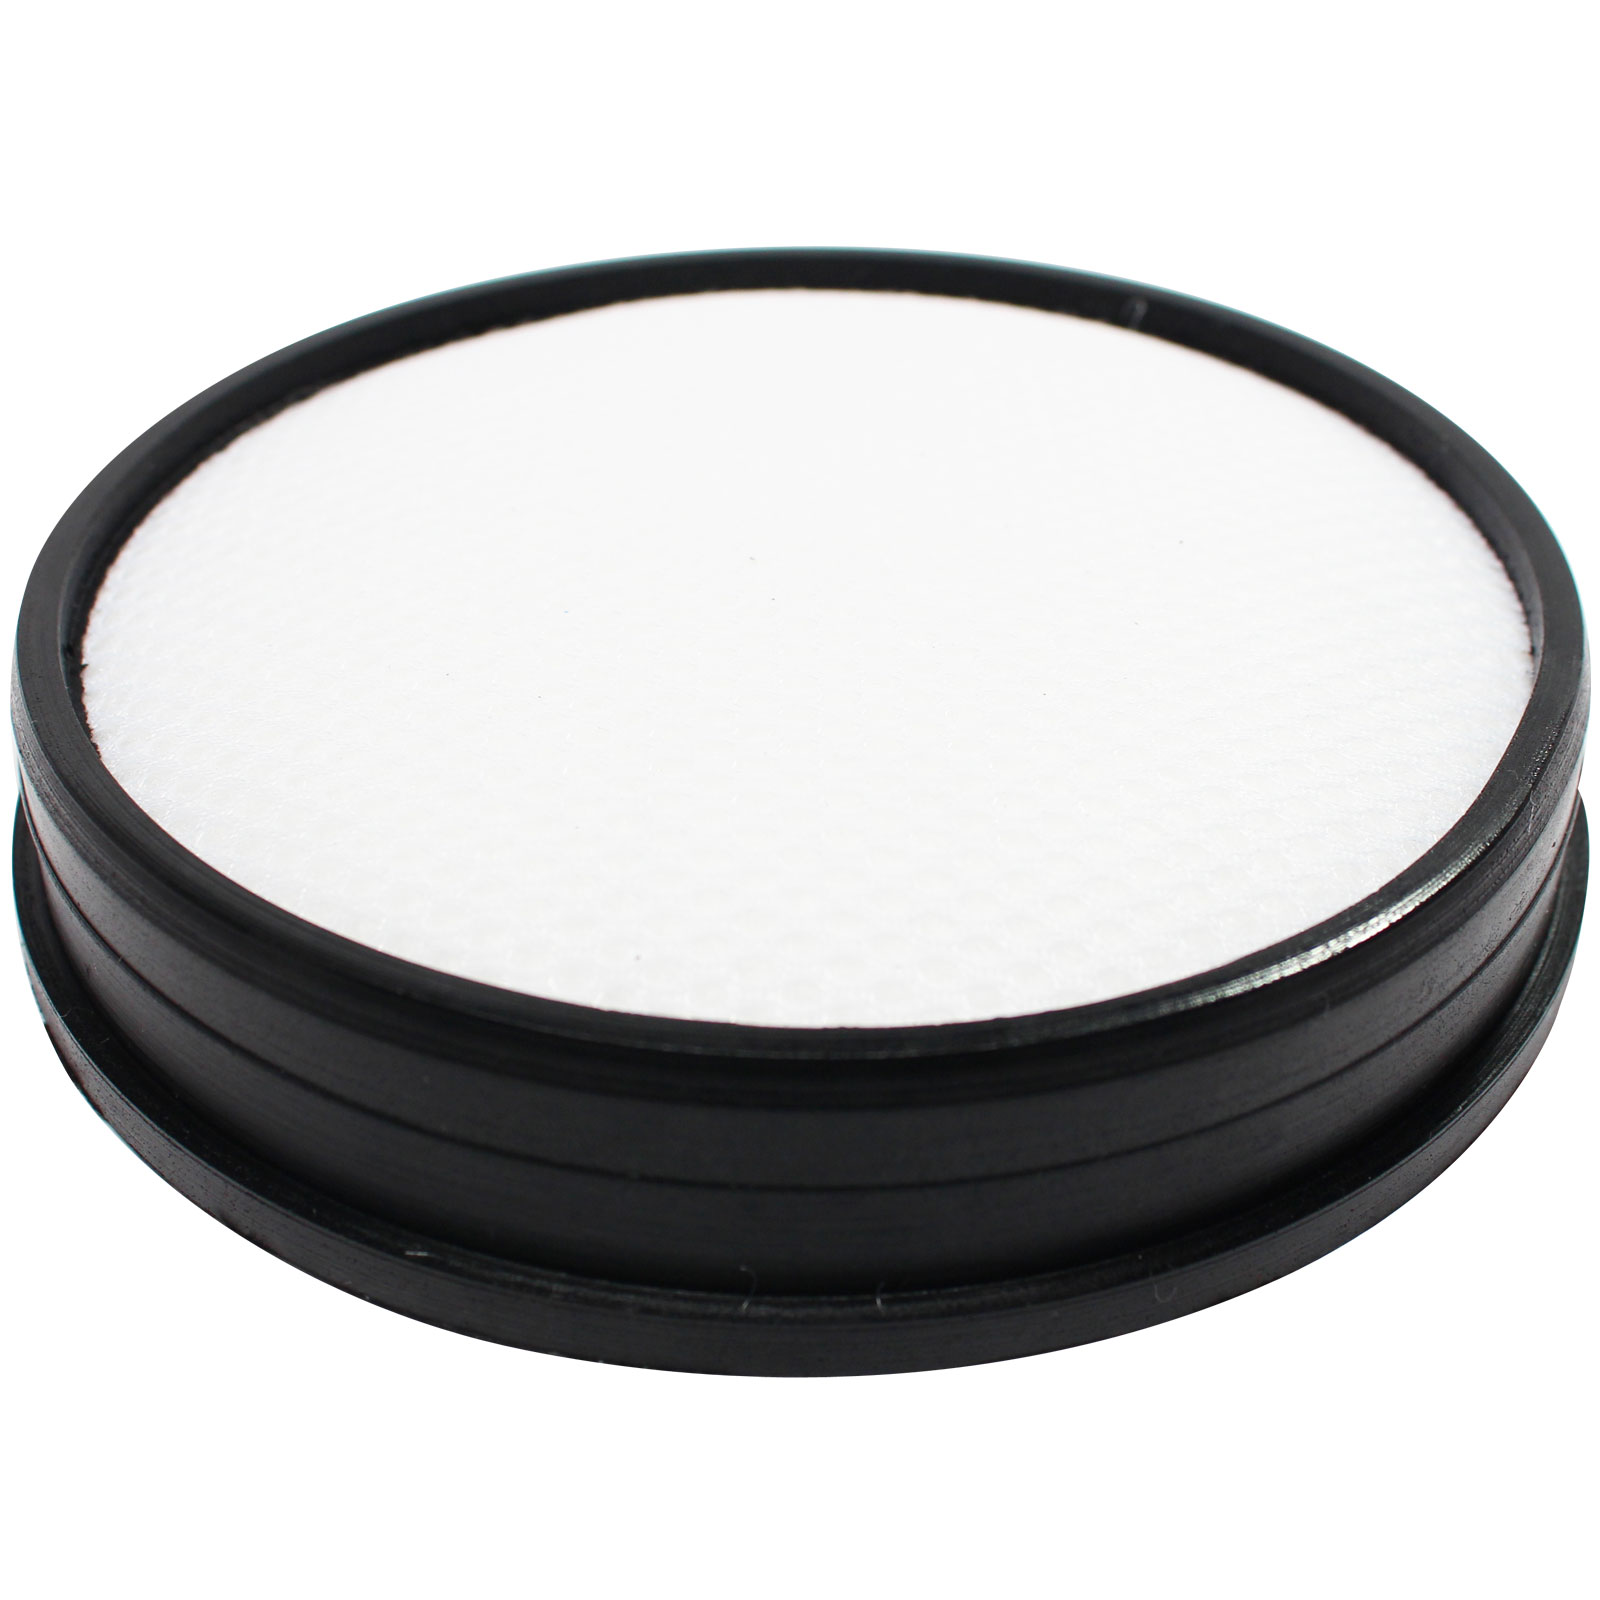 Replacement Hoover Wt Air Steerable Pet UH72405 Vacuum Primary Filter - Compatible Hoover Windtunnel 303903001 Primary Filter - image 2 de 4